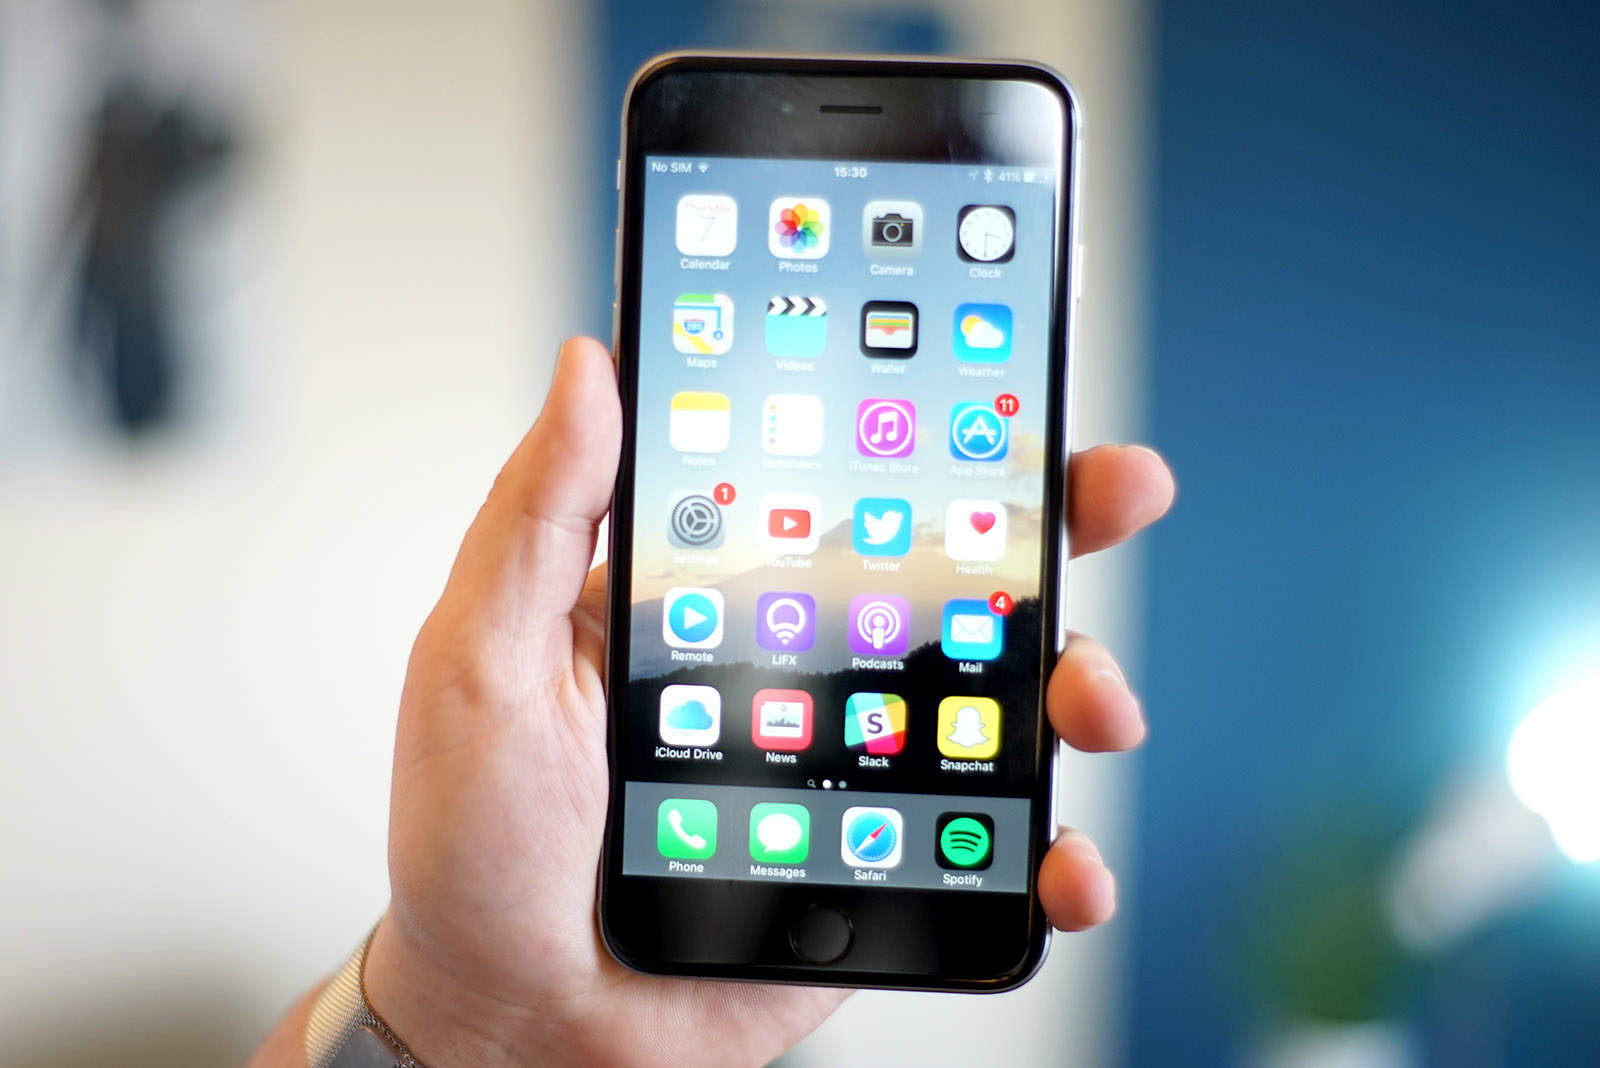 iPhone 7 Plus may be in line for Quad HD display